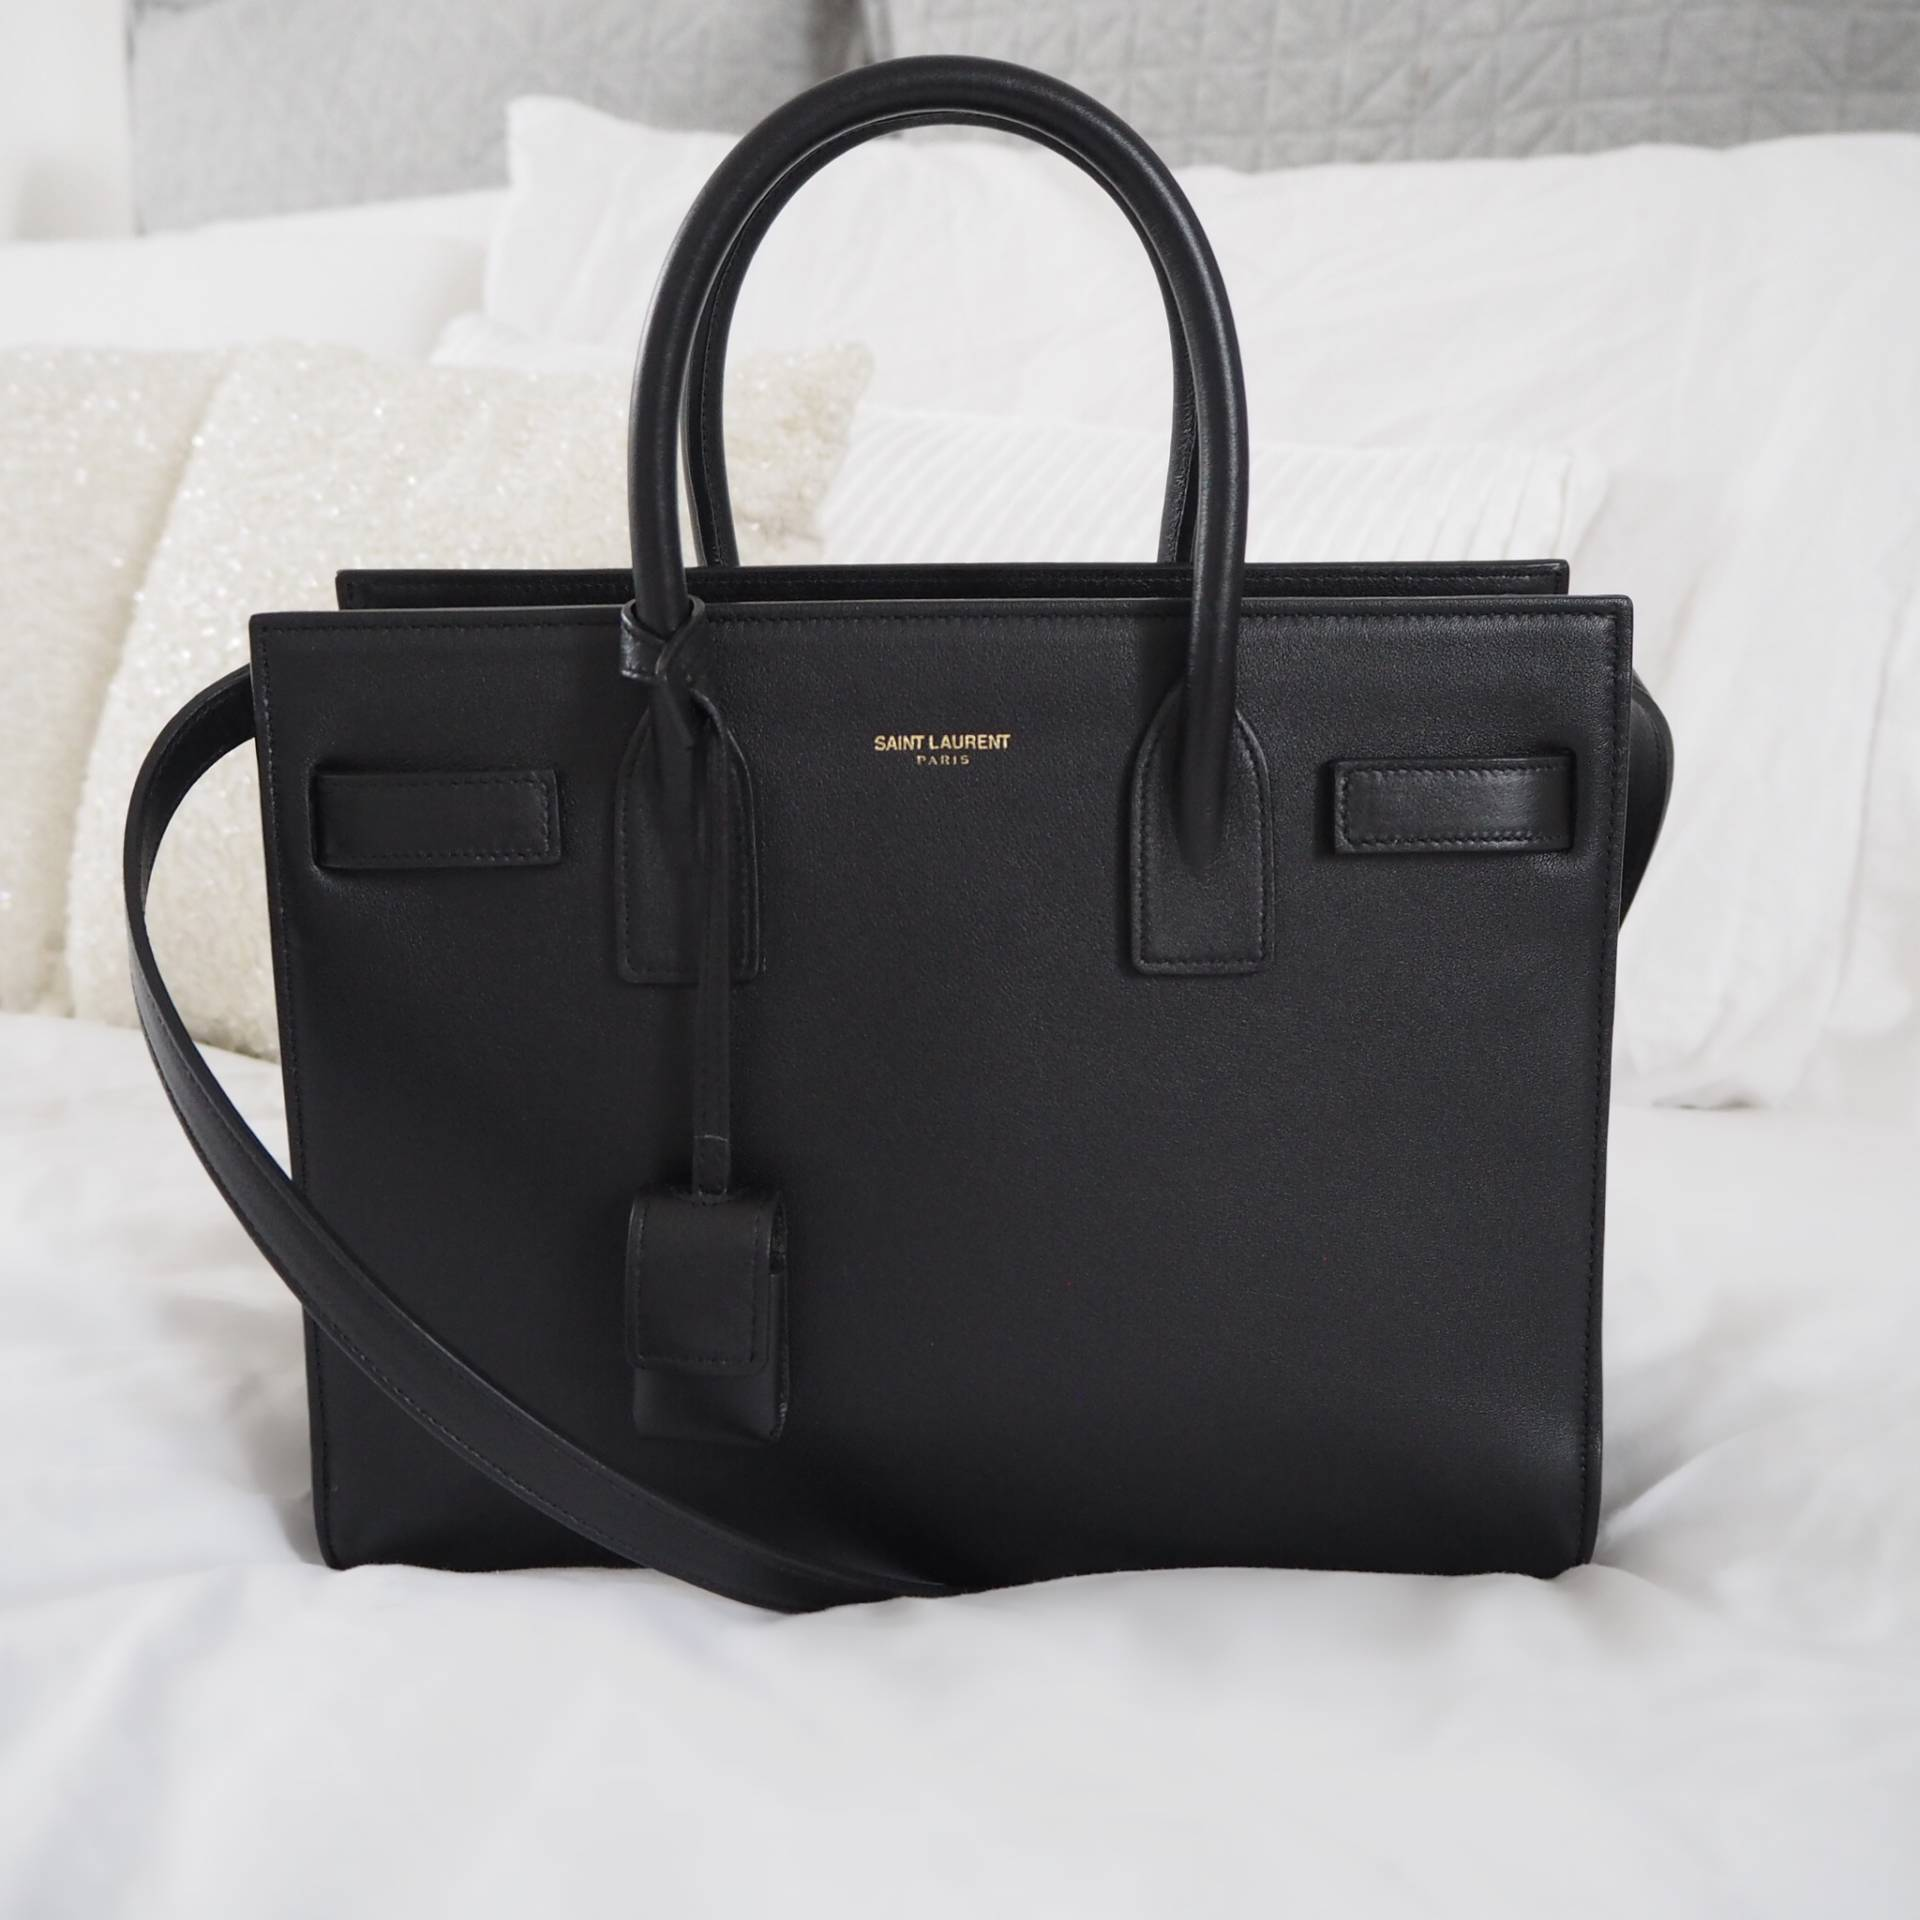 3bd215c065061 Saint Laurent Sac de Jour Baby in Smooth Leather